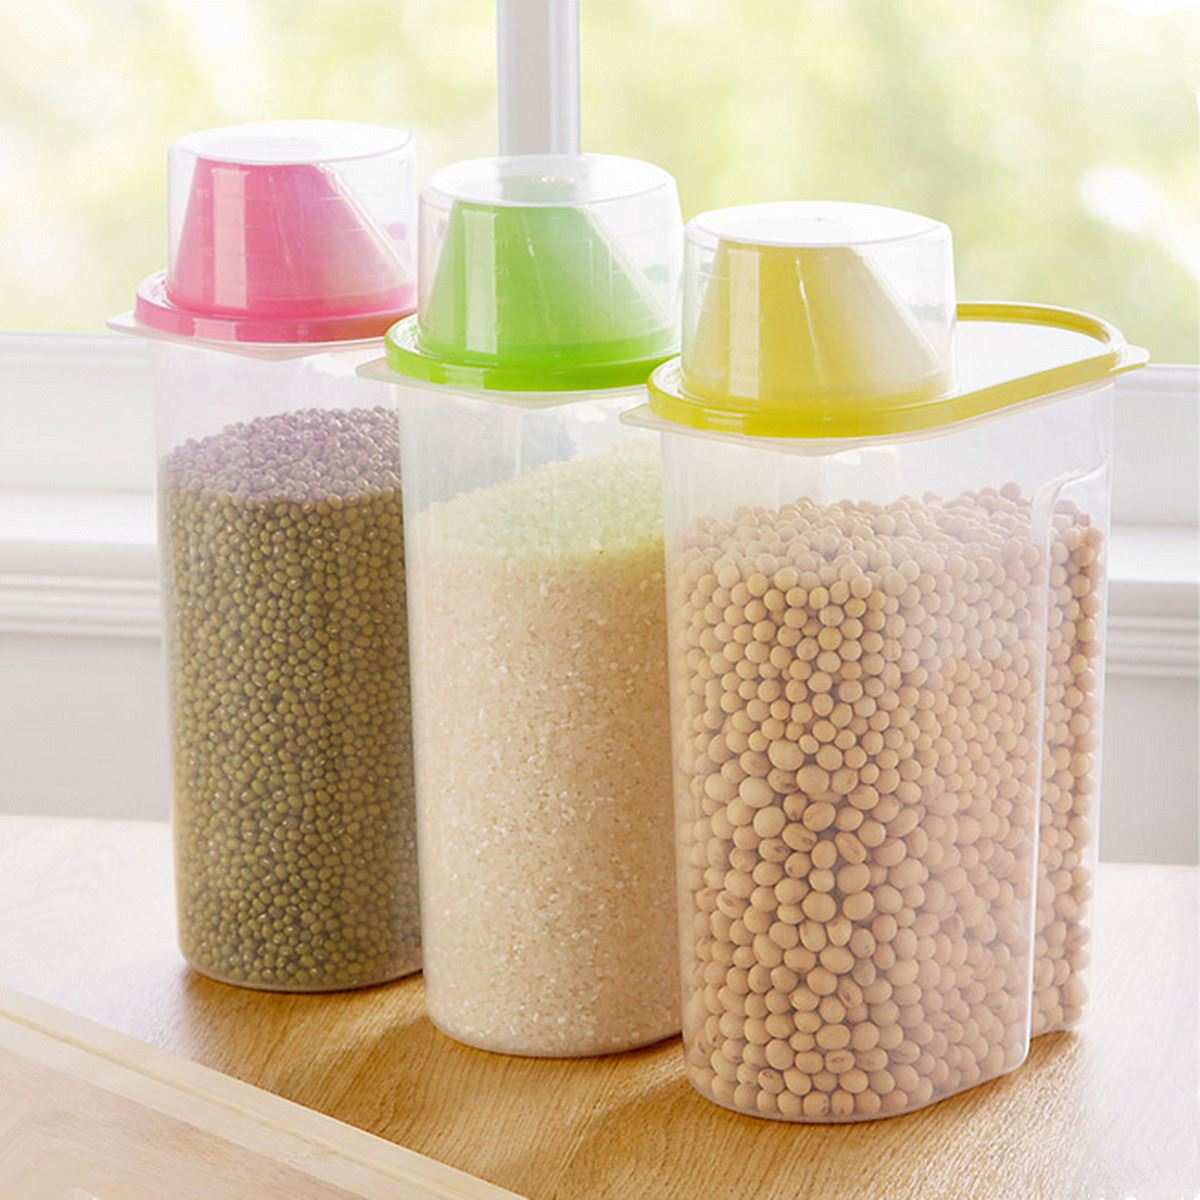 19L Food Cereal Grain Bean Storage Container Box Plastic Kitchen